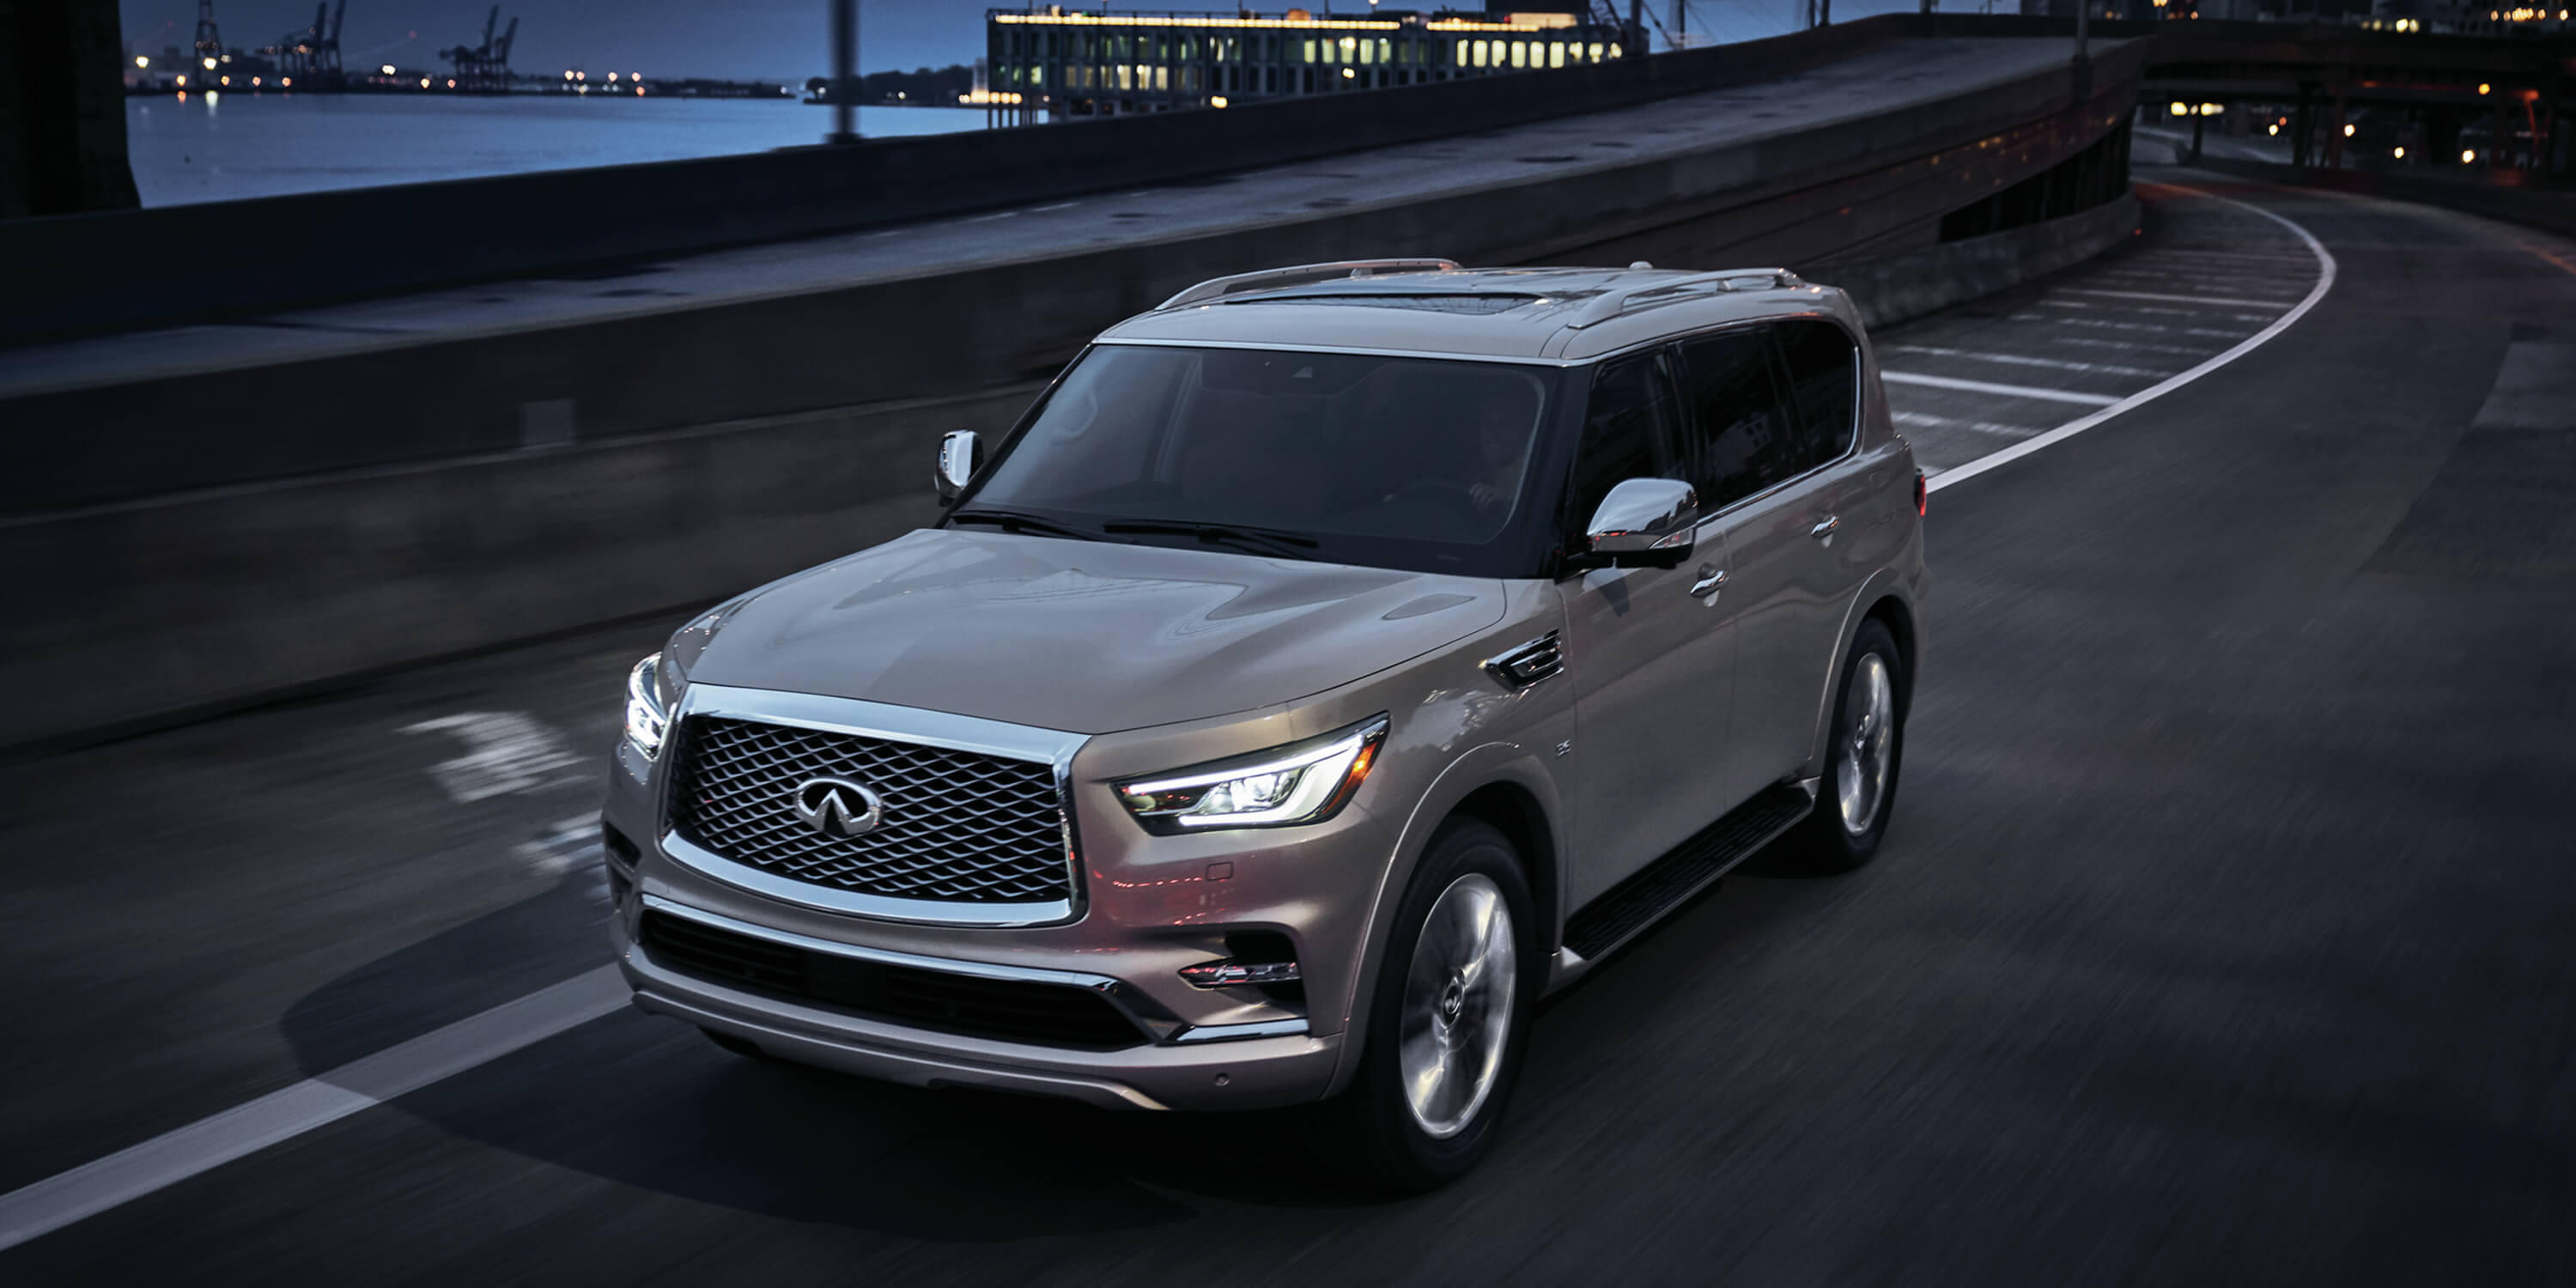 2019 INFINITI QX80 SUV Power and Performance Towing Capacity